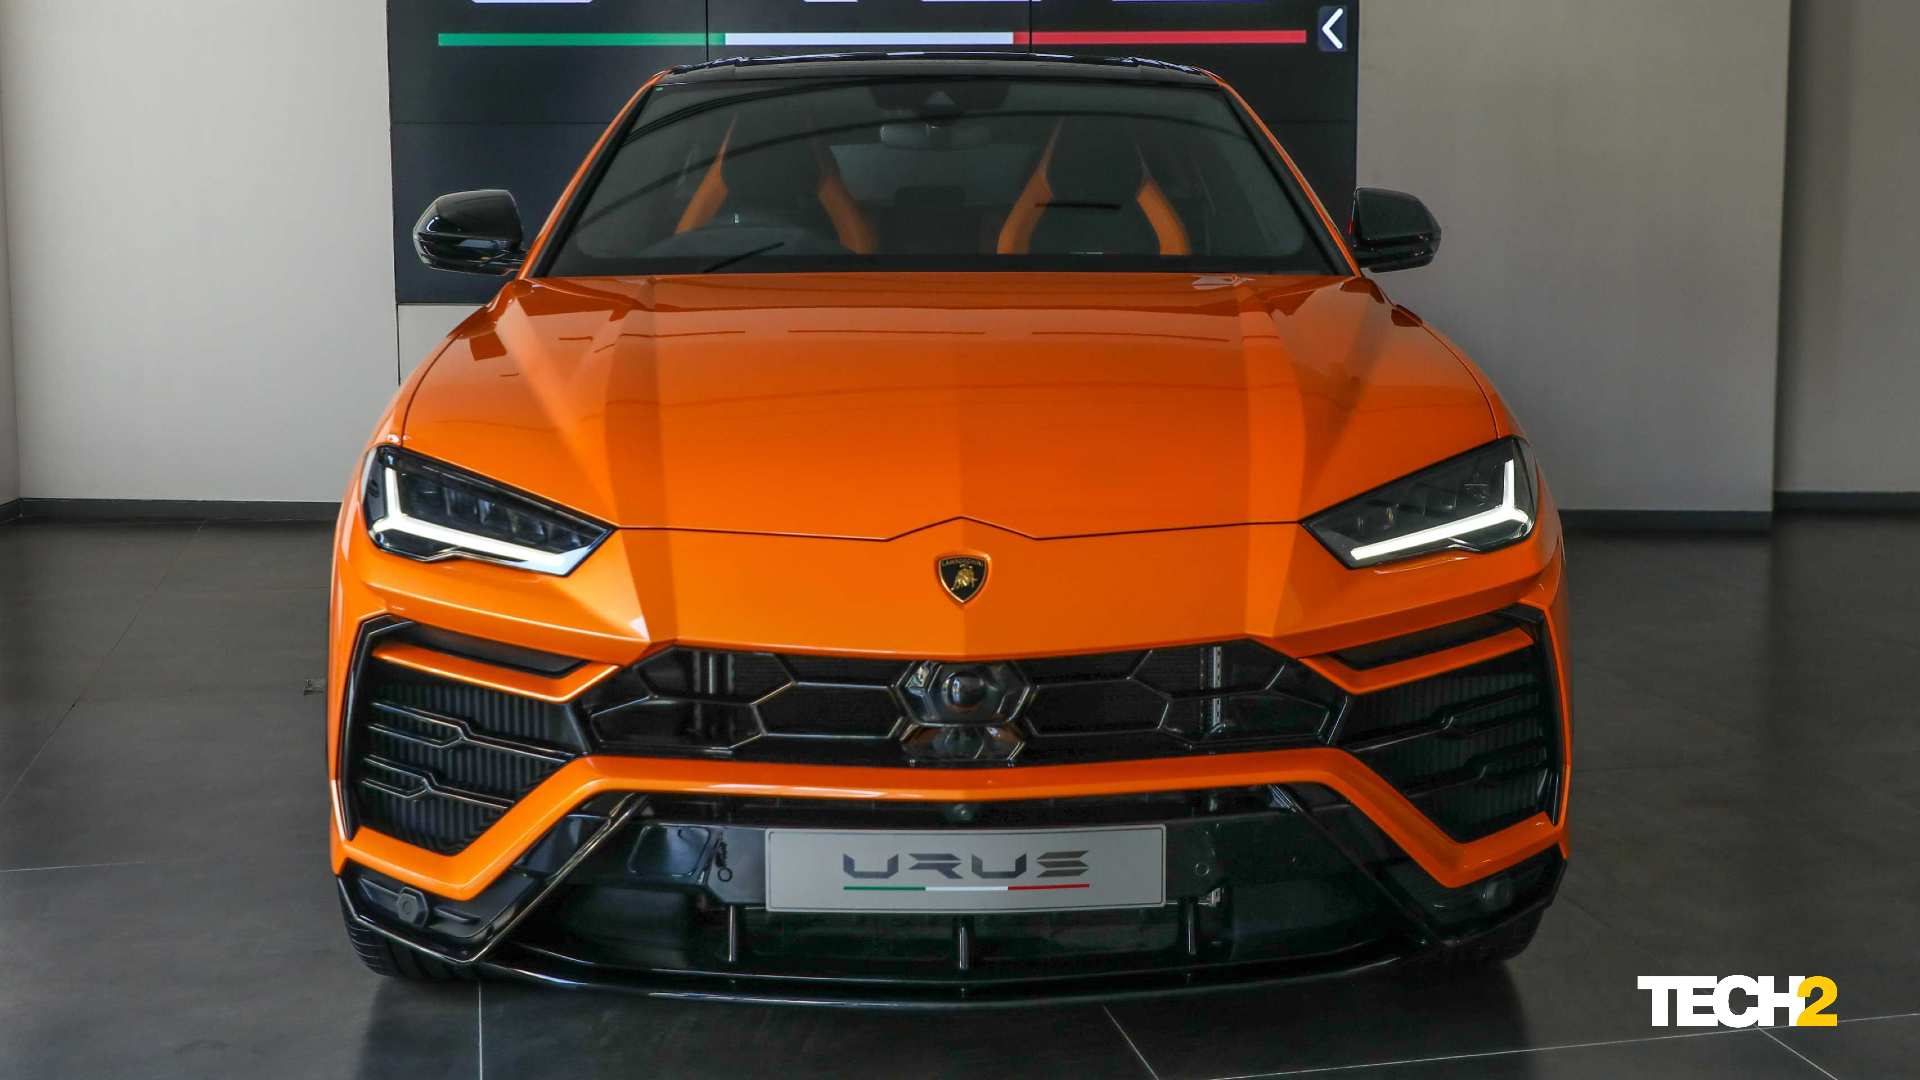 Lamborghini Urus Pearl Capsule Edition launched in India at Rs 3.43 crore- Technology News, FP